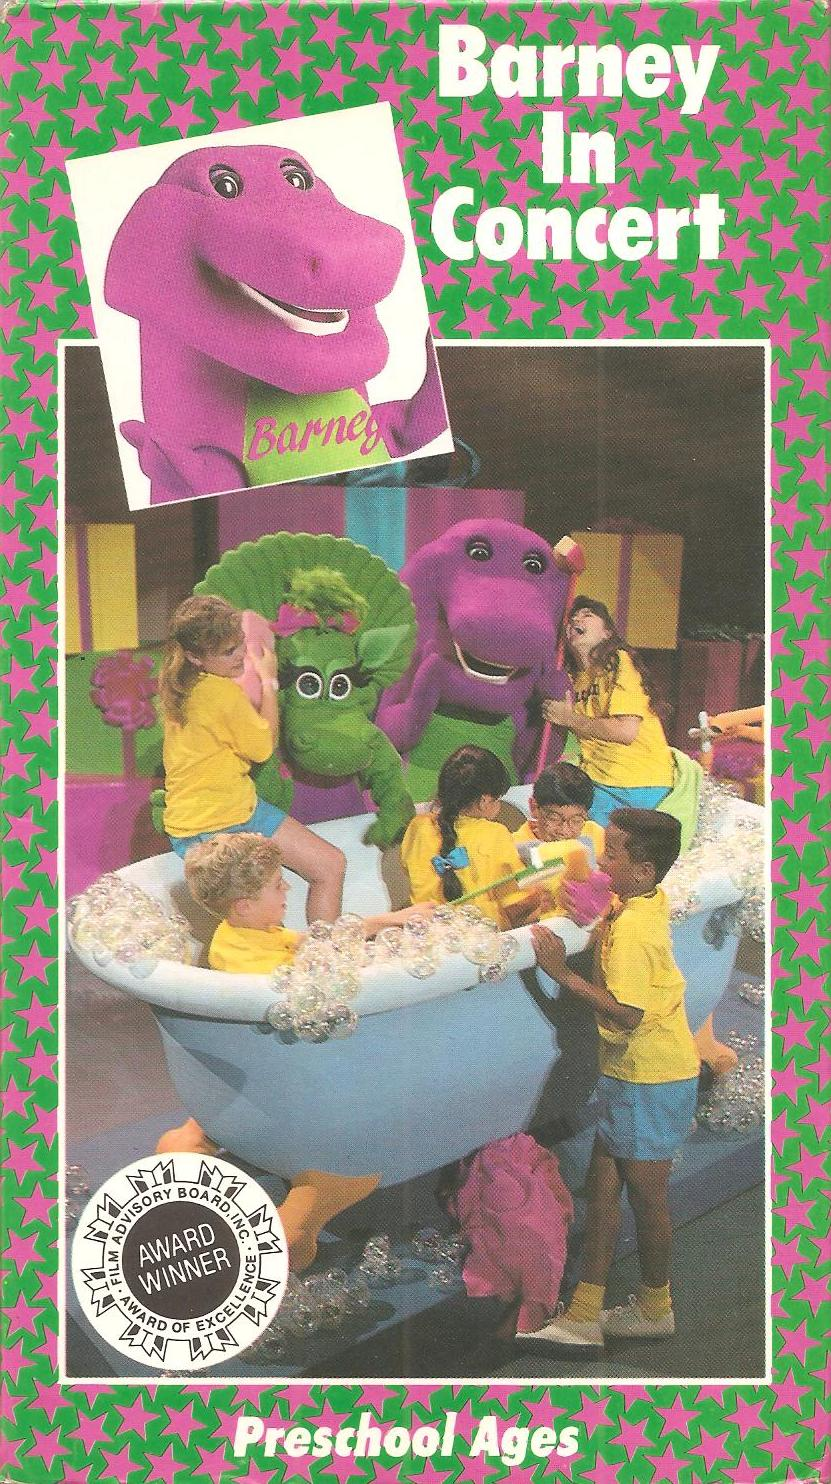 Barney_In_Concert_Original_Cover.jpg